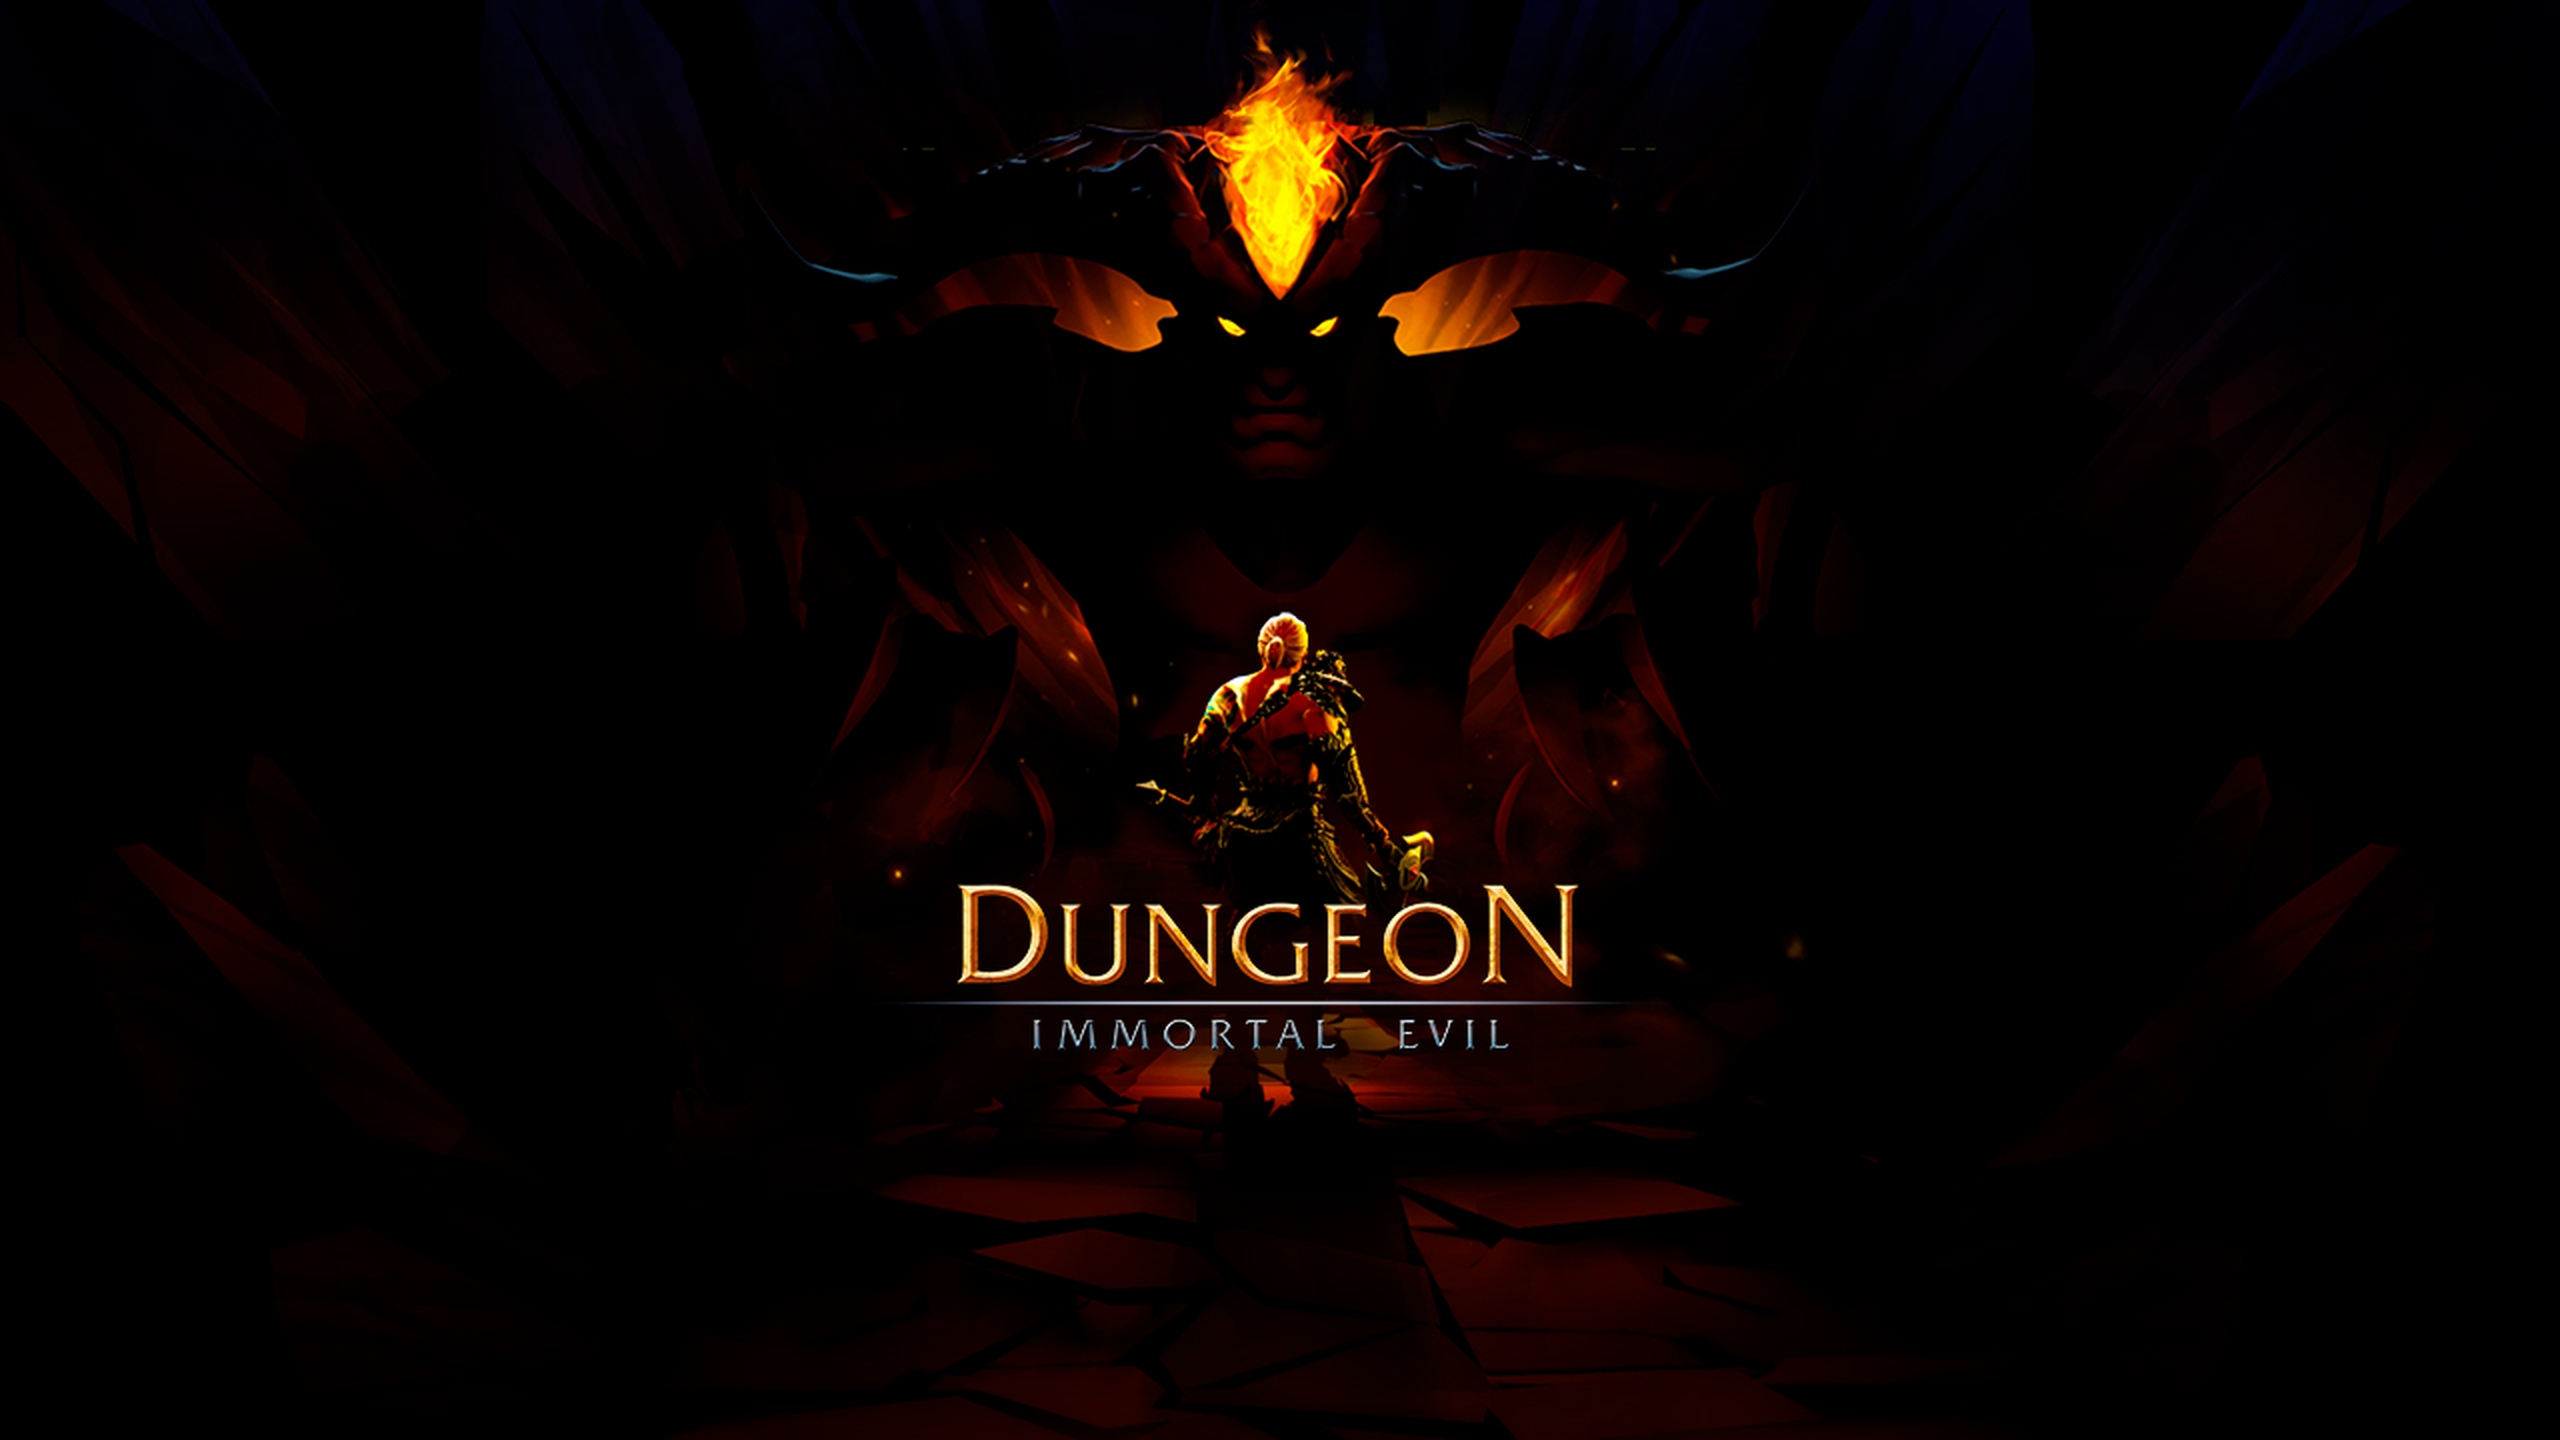 The Dungeon Immortal Evil Online Slot Demo Game by Evoplay Entertainment